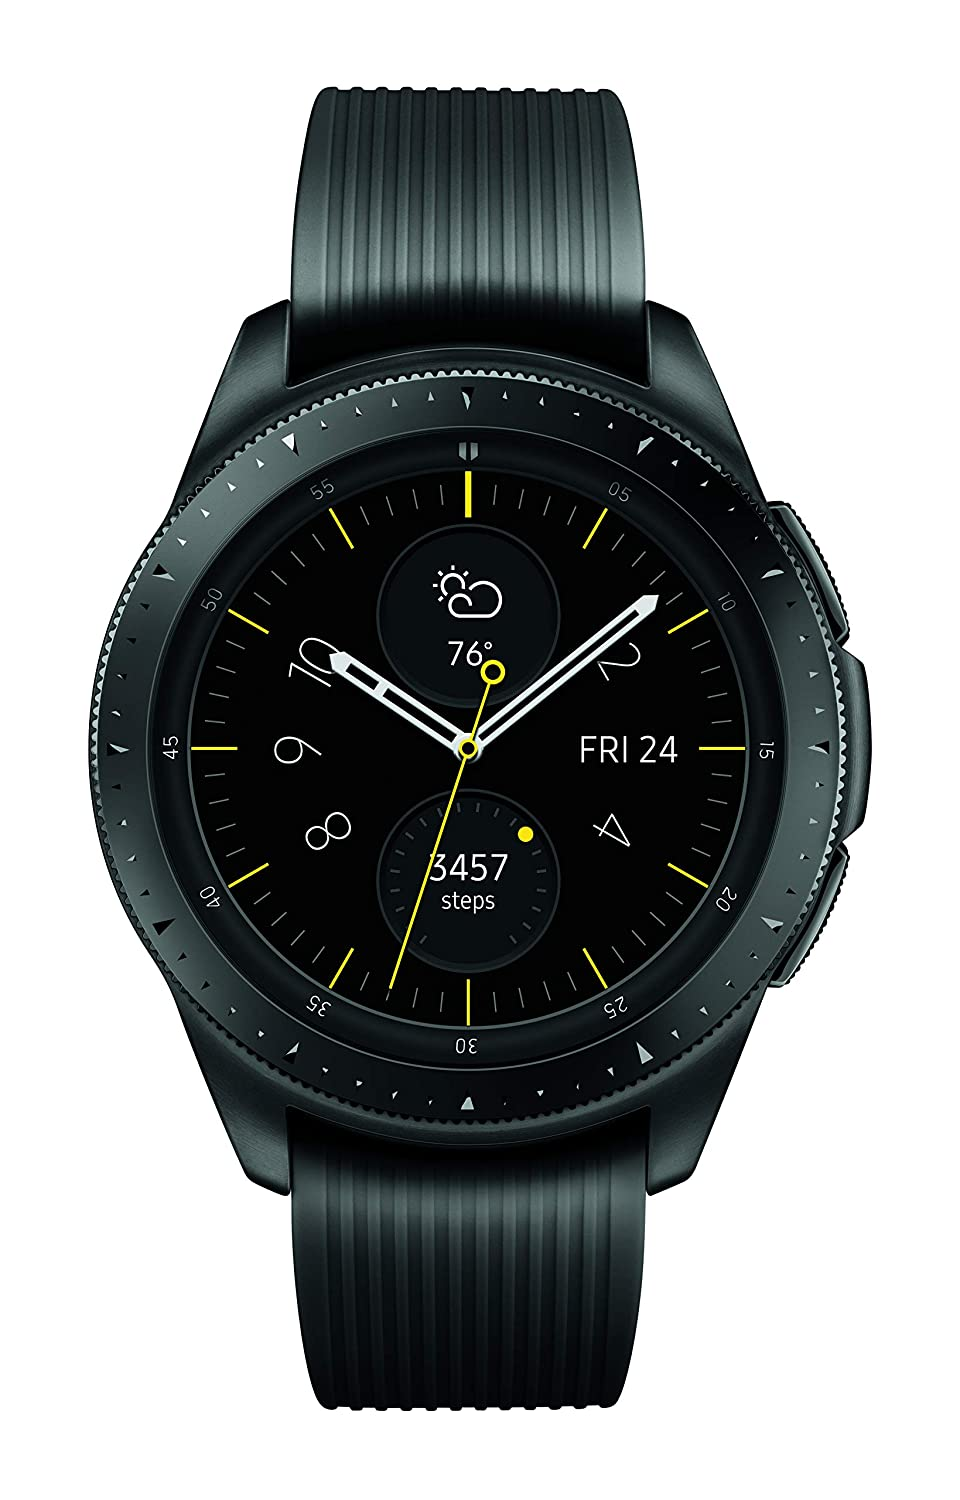 71InJh4LIQL. SL1500  - 10 Best Smartwatches 2019